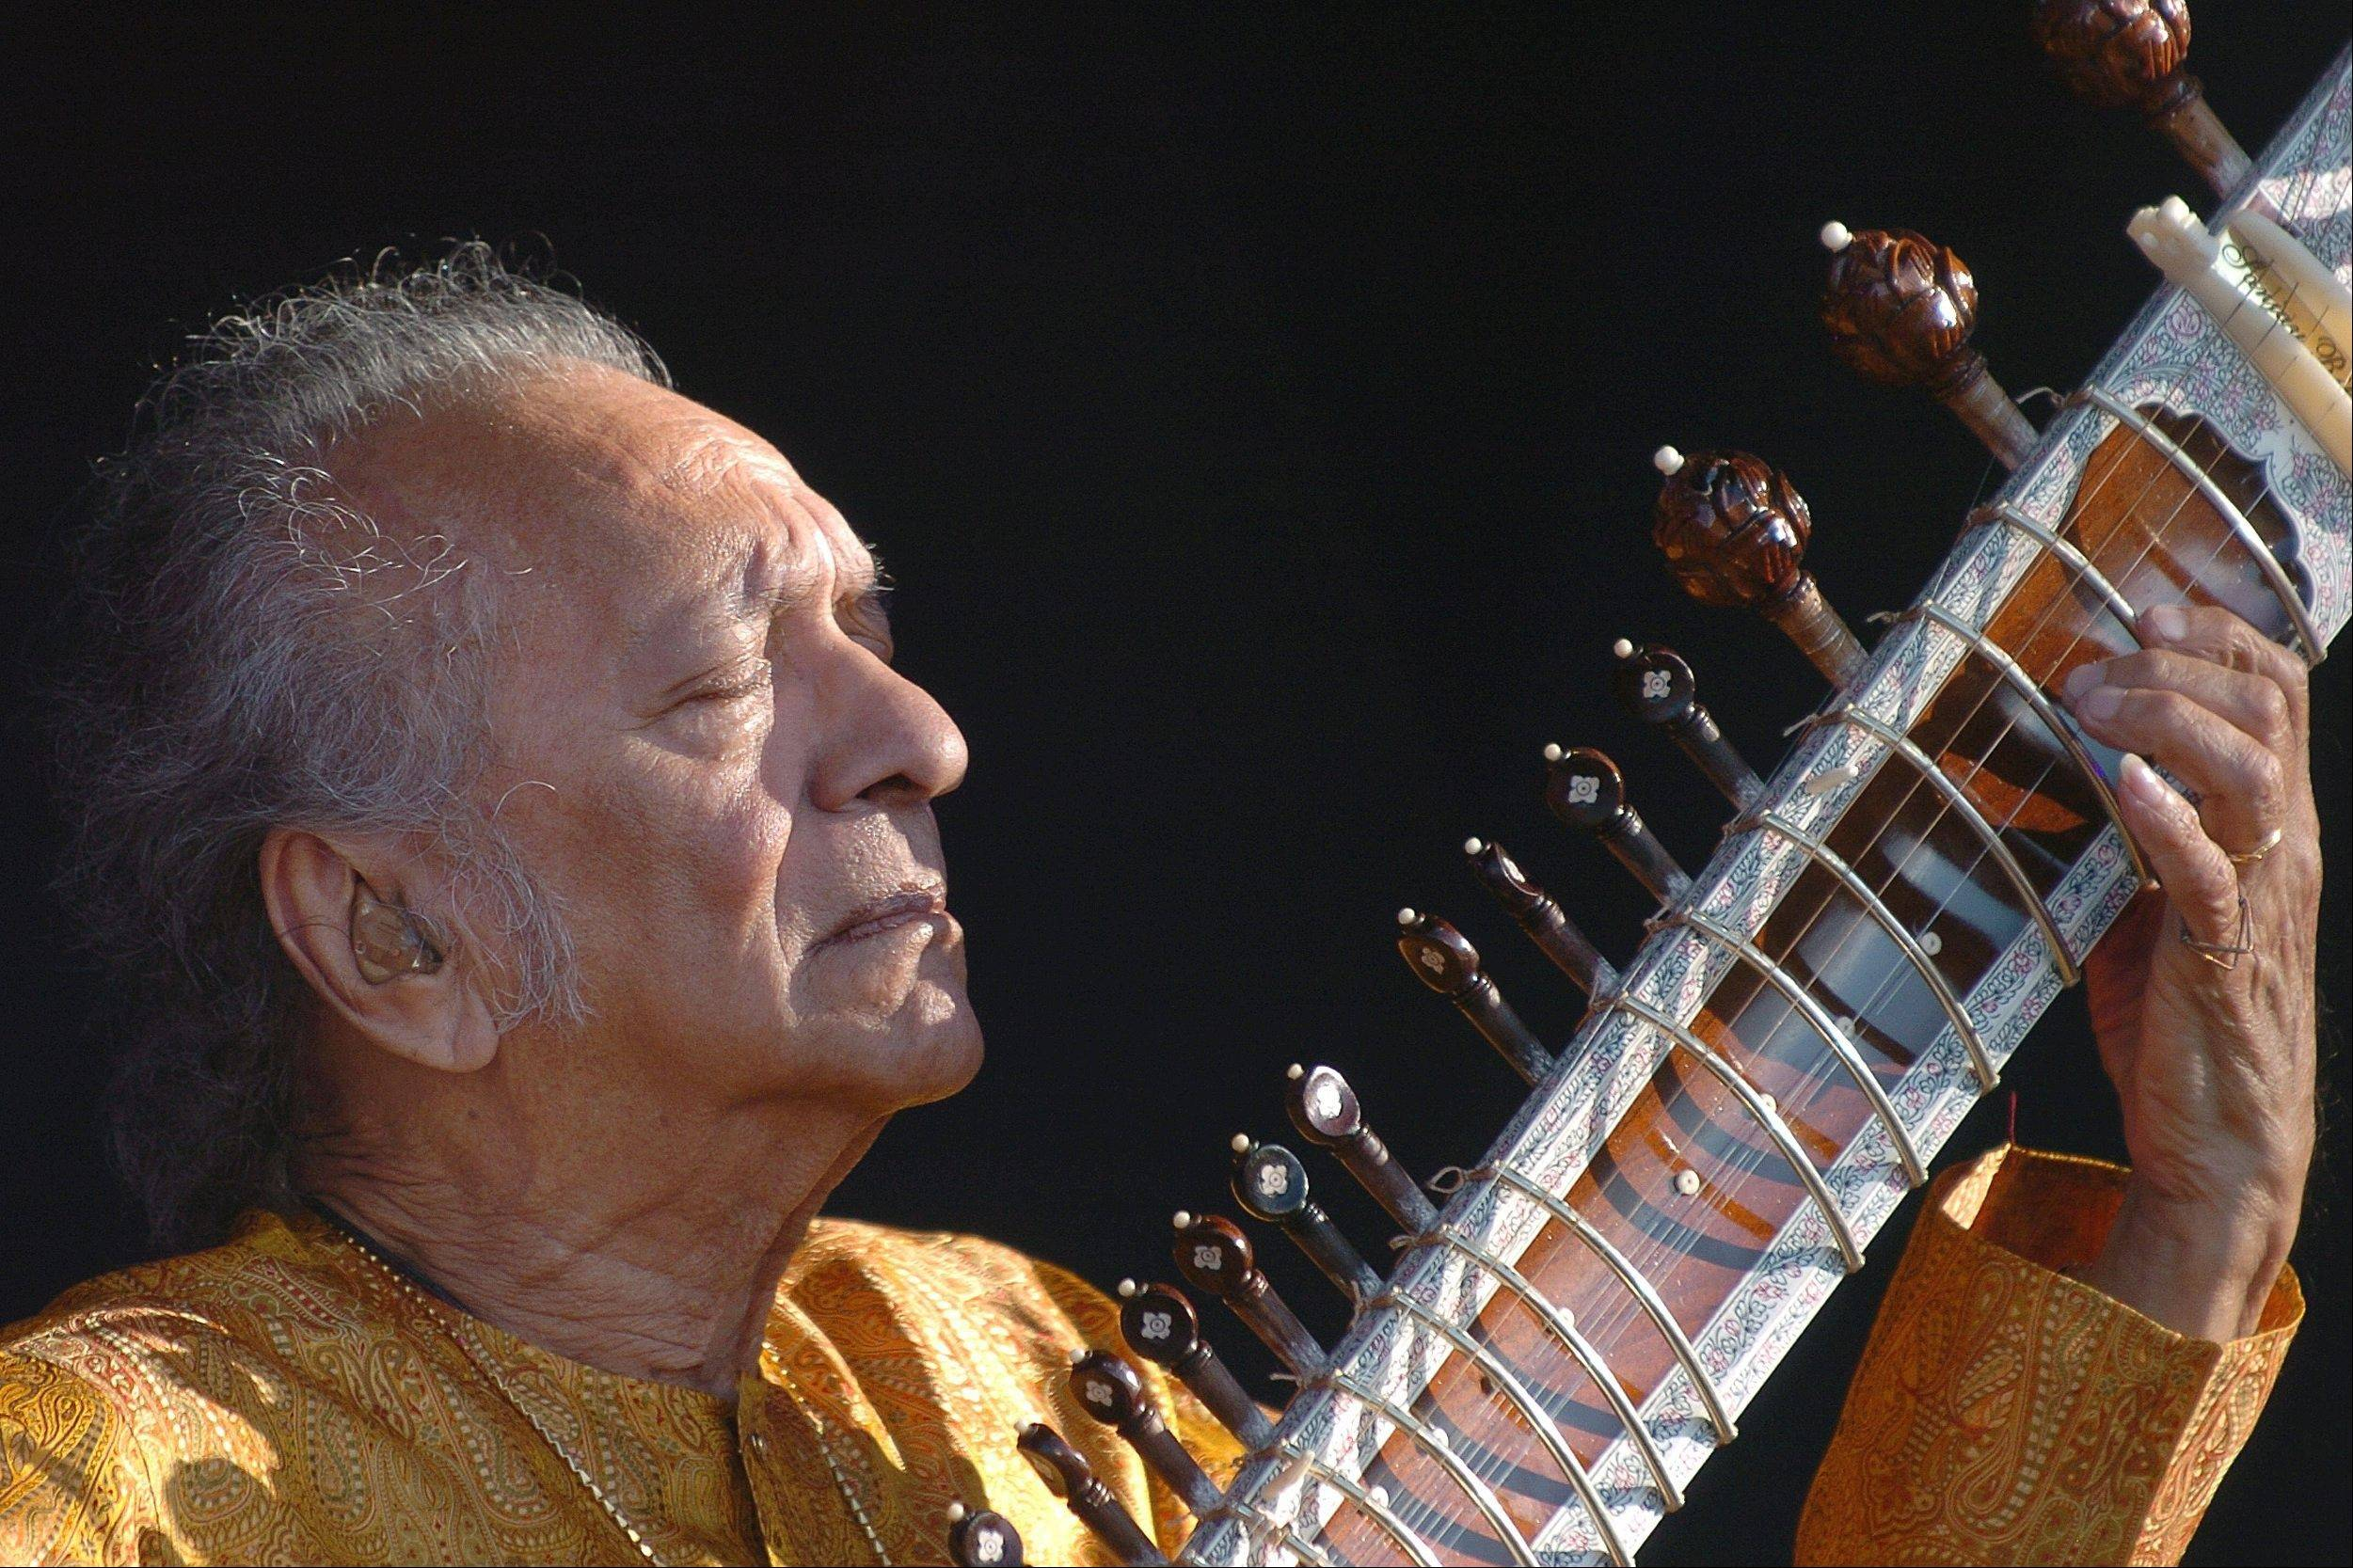 Indian musician Ravi Shankar, the sitar virtuoso who became a hippie musical icon of the 1960s after hobnobbing with the Beatles and who introduced traditional Indian ragas to Western audiences over an eight-decade career, died Tuesday, Dec. 11, 2012. He was 92.